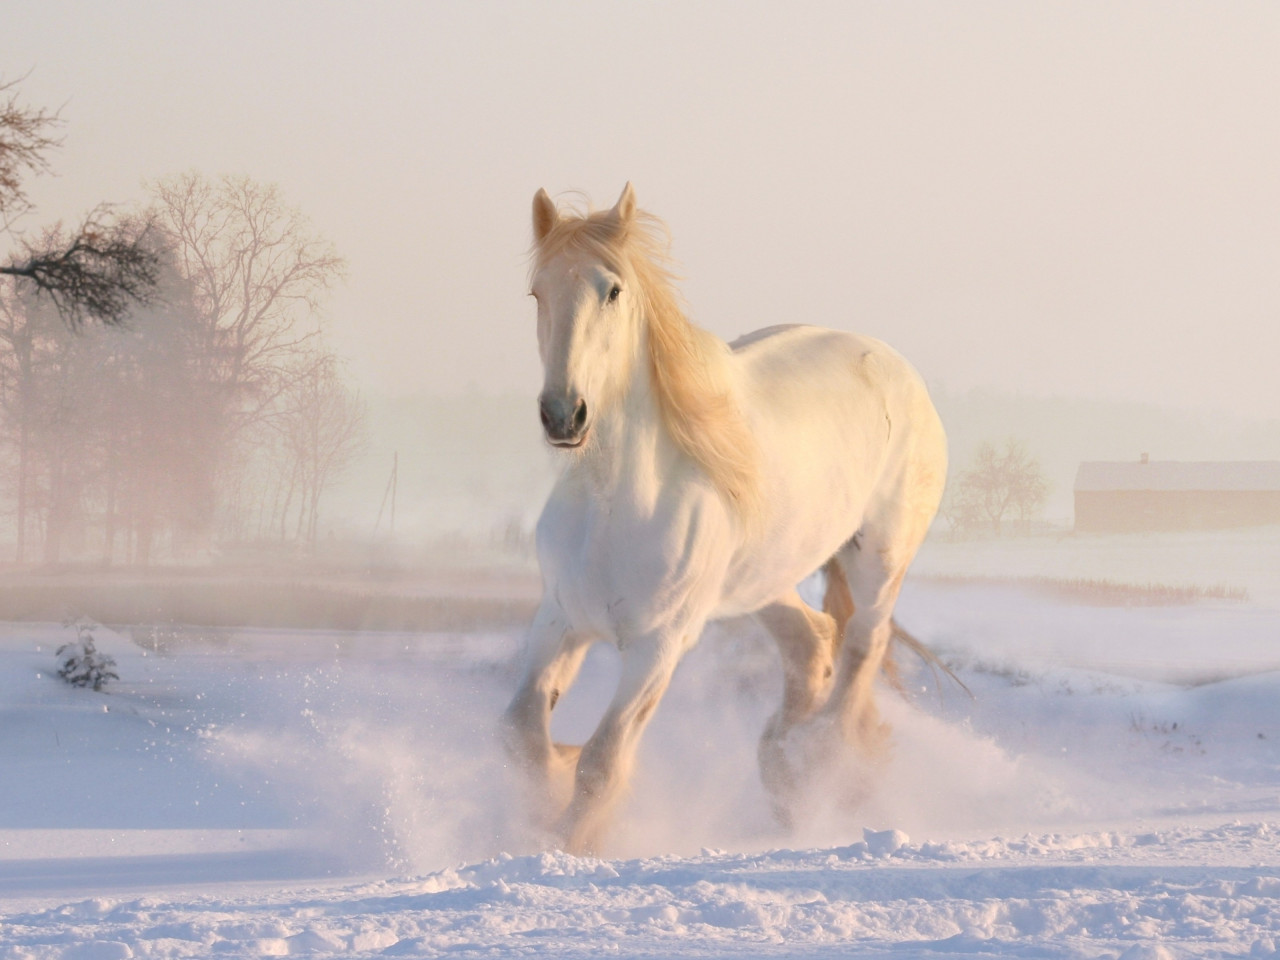 White horse running through snow wallpaper 1280x960